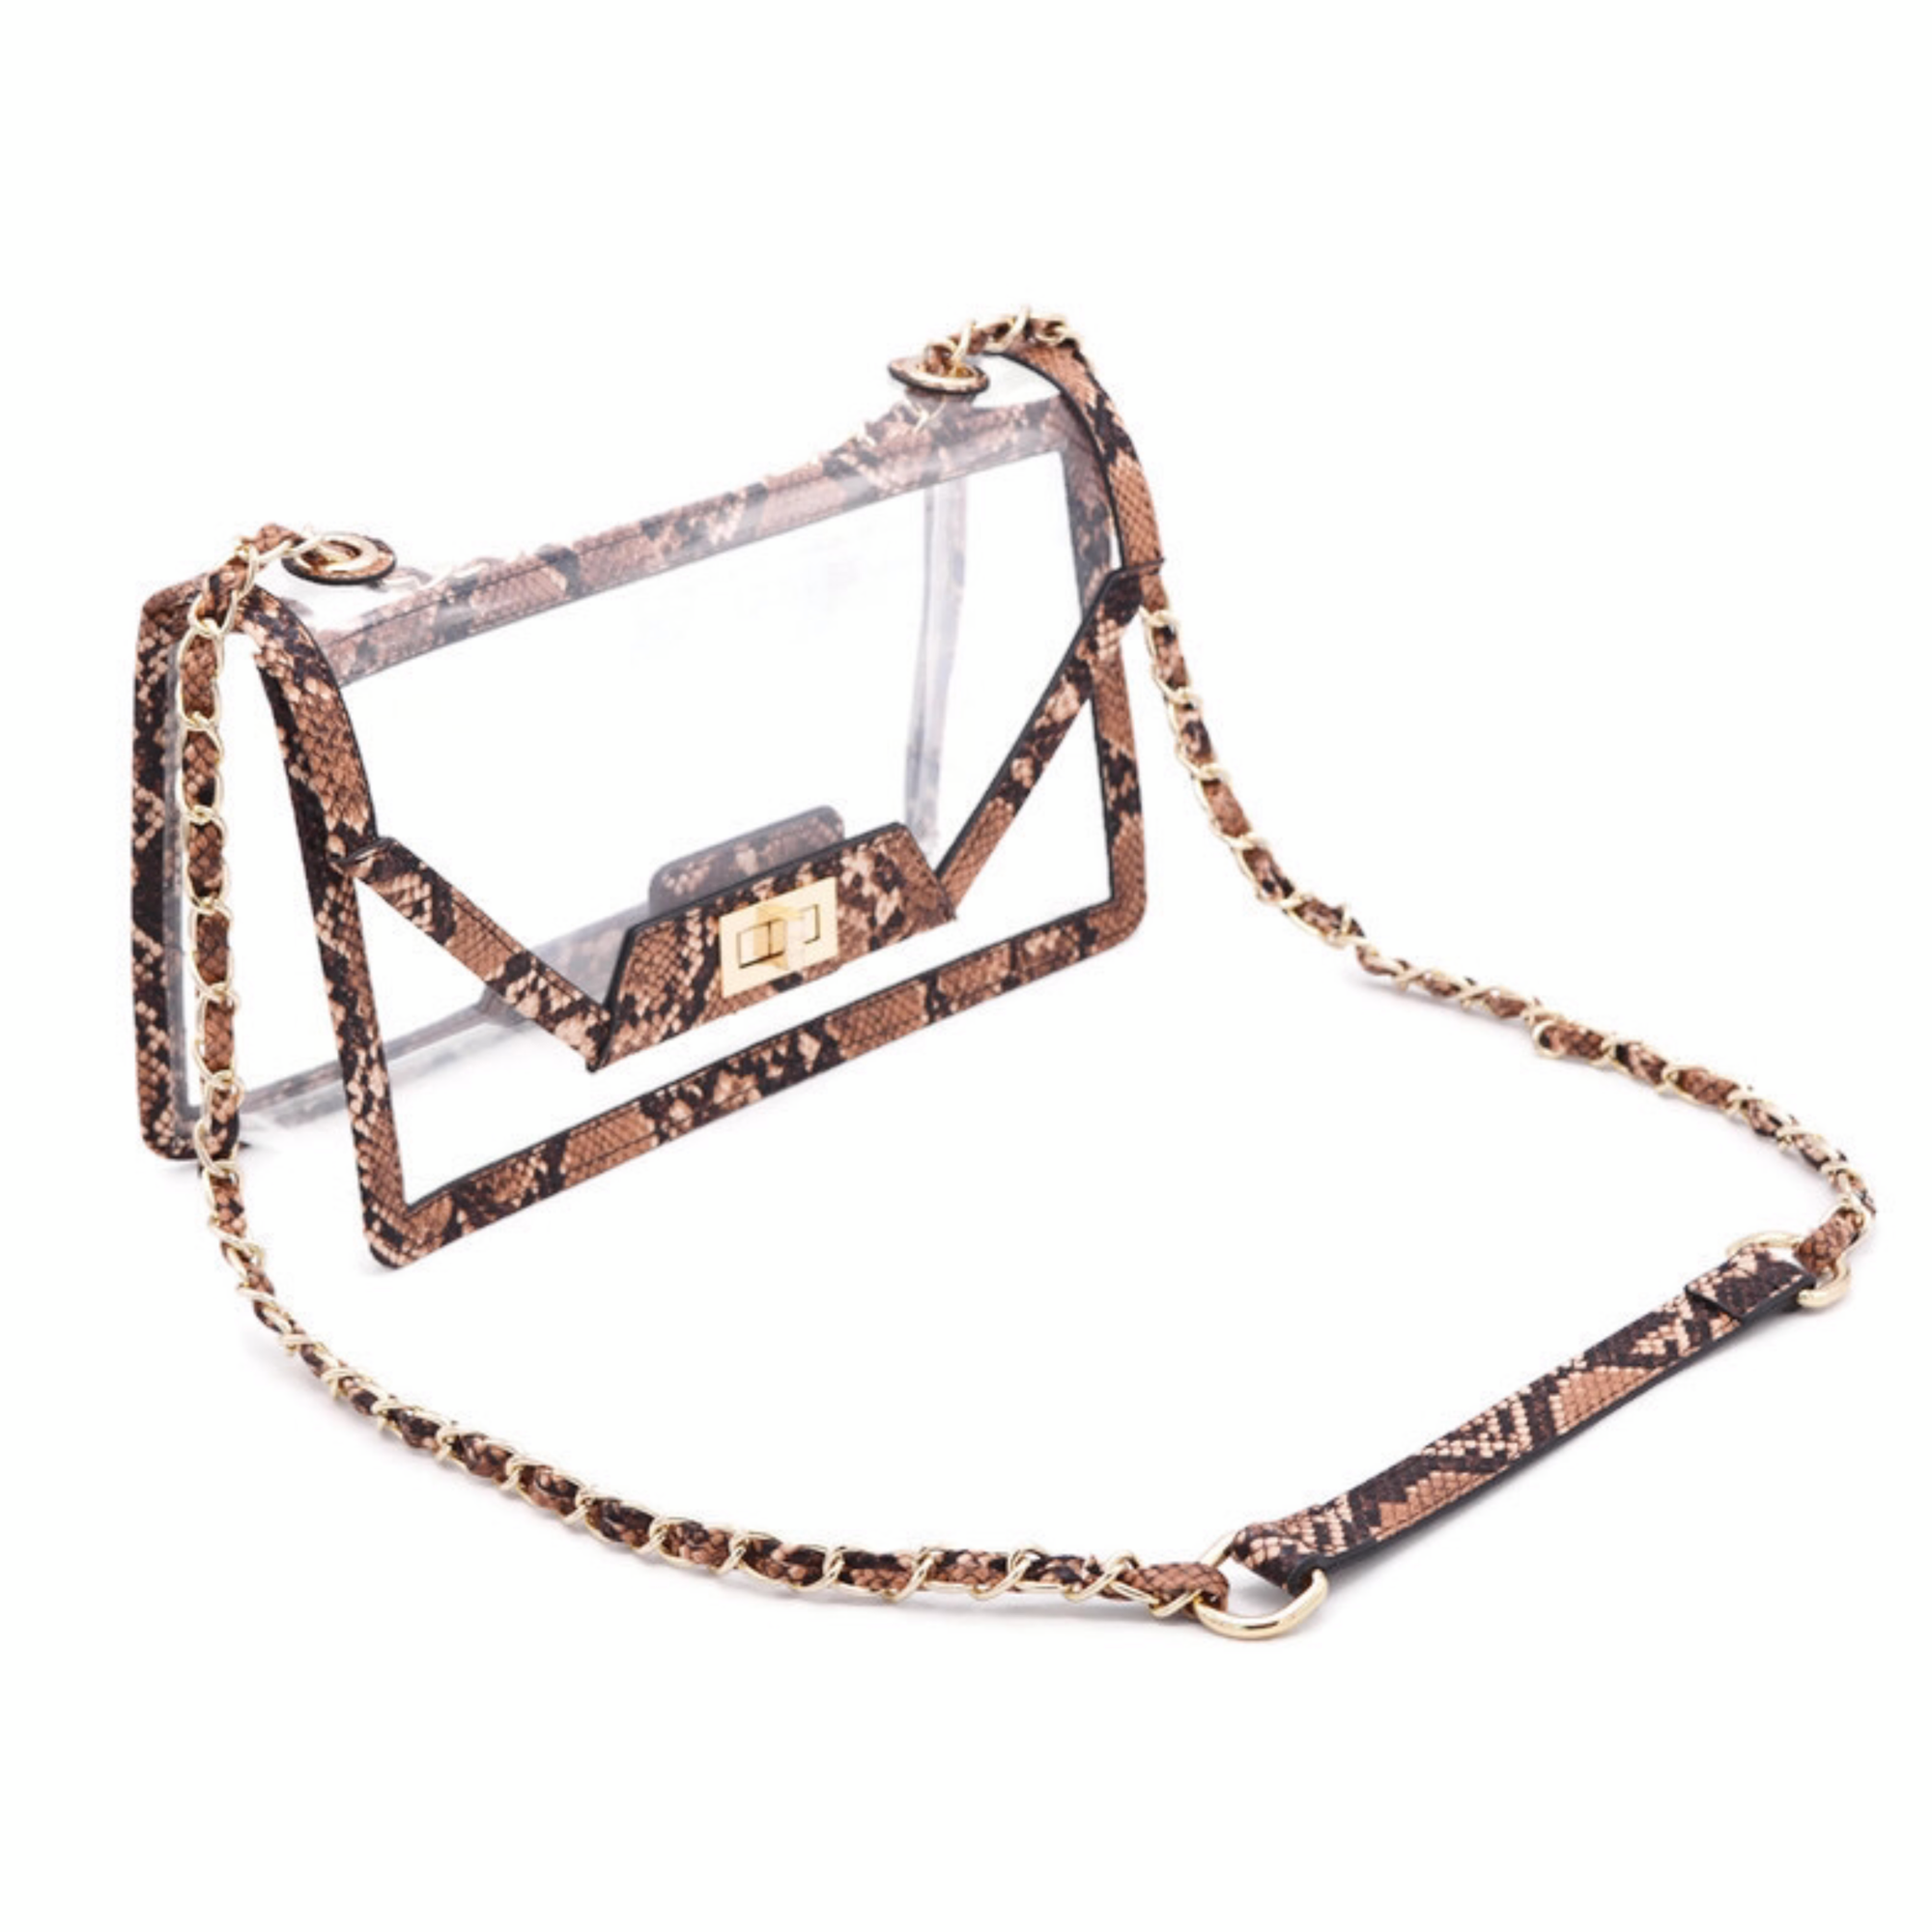 The Mama Cher | Shore Snake POLICY Handbags